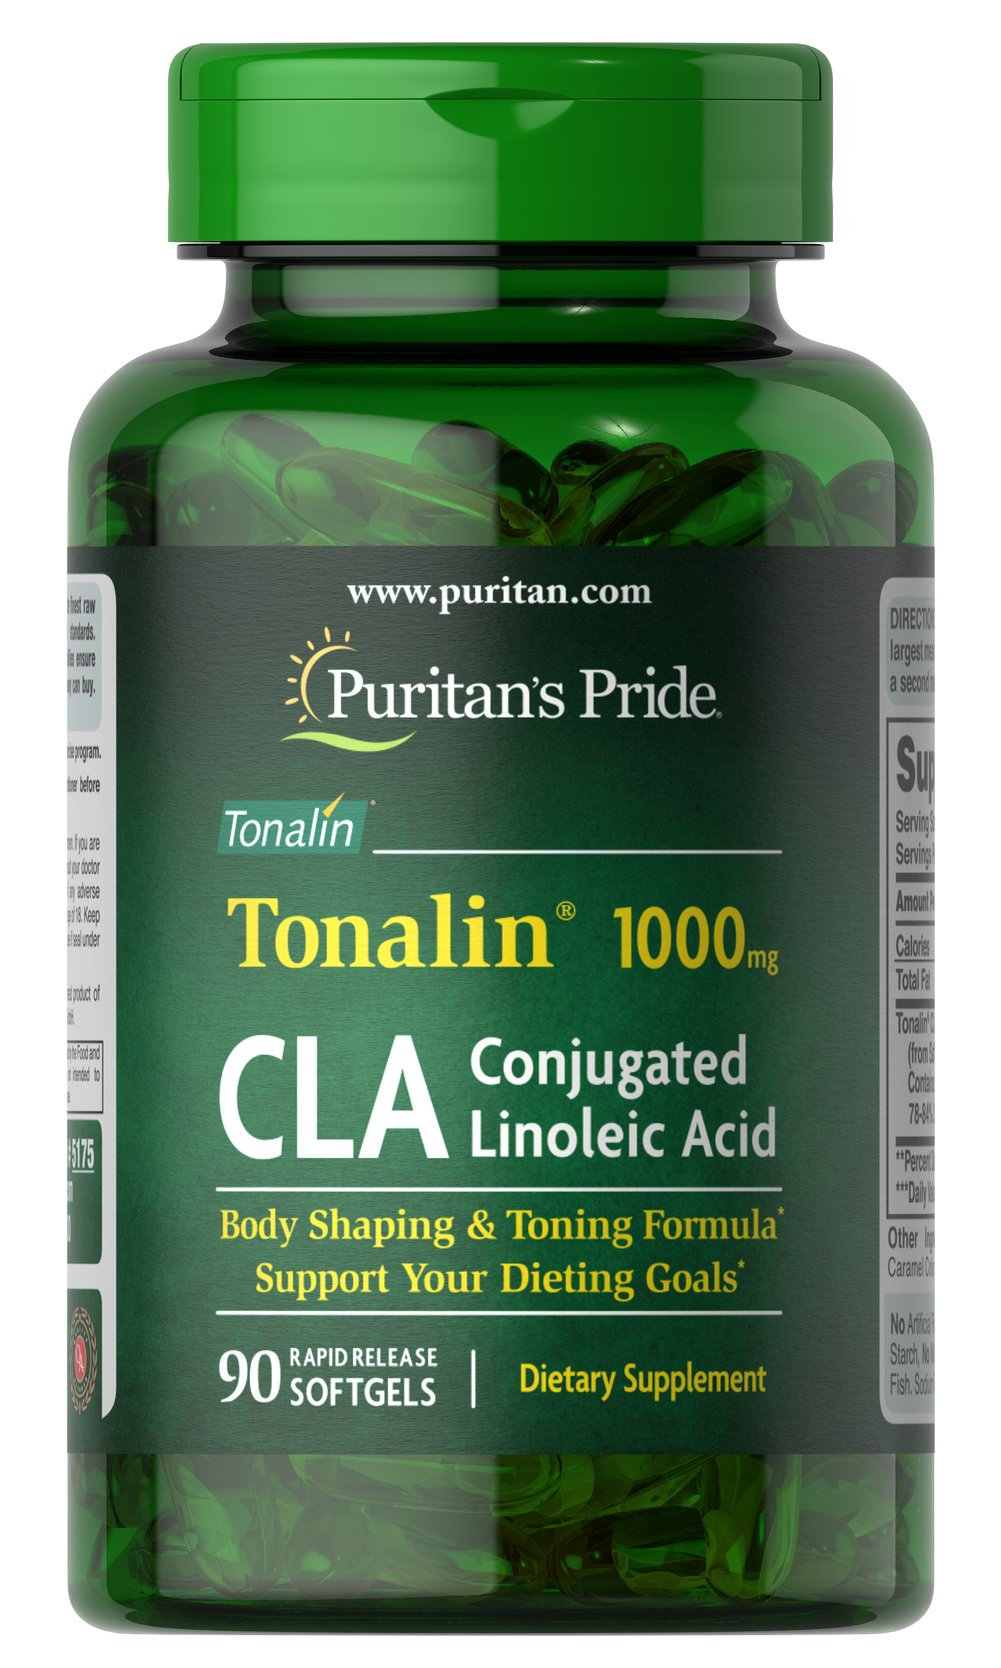 CLA 1000 mg Tonalin® <p>CLA (Conjugated Linoleic Acid) supports a healthy body composition**</p><p>Derived from Safflower Oil, CLA supports your dieting goals**</p><p>Rapid Release softgels are formulated for quick release into your system</p><p>Use with a reduced calorie diet and daily exercise program</p> 90 Softgels 1000 mg $23.99